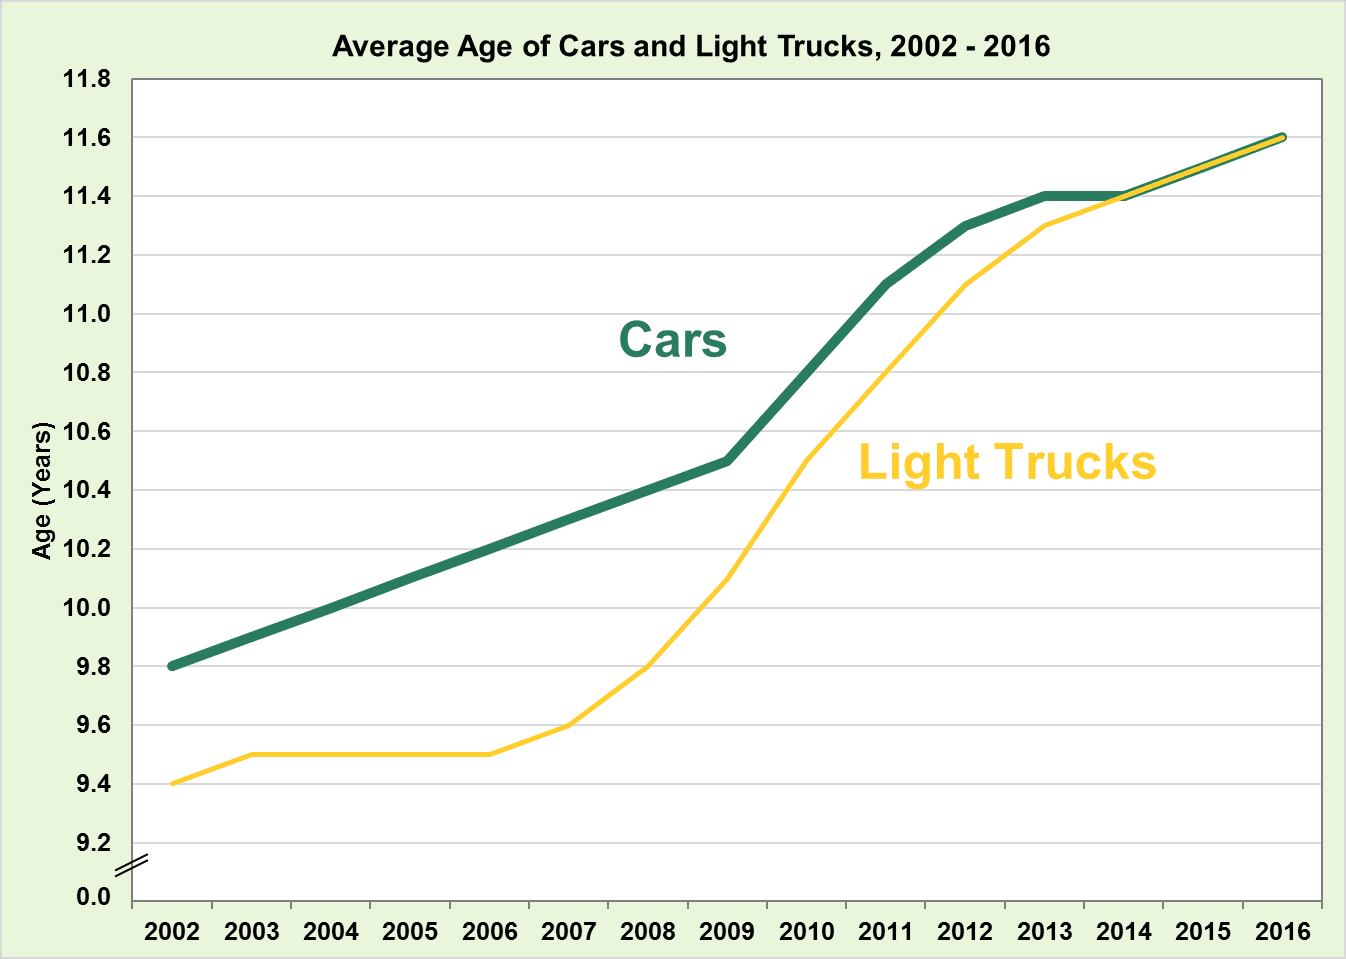 Average Age of Cars and Light Trucks, 2002-2016